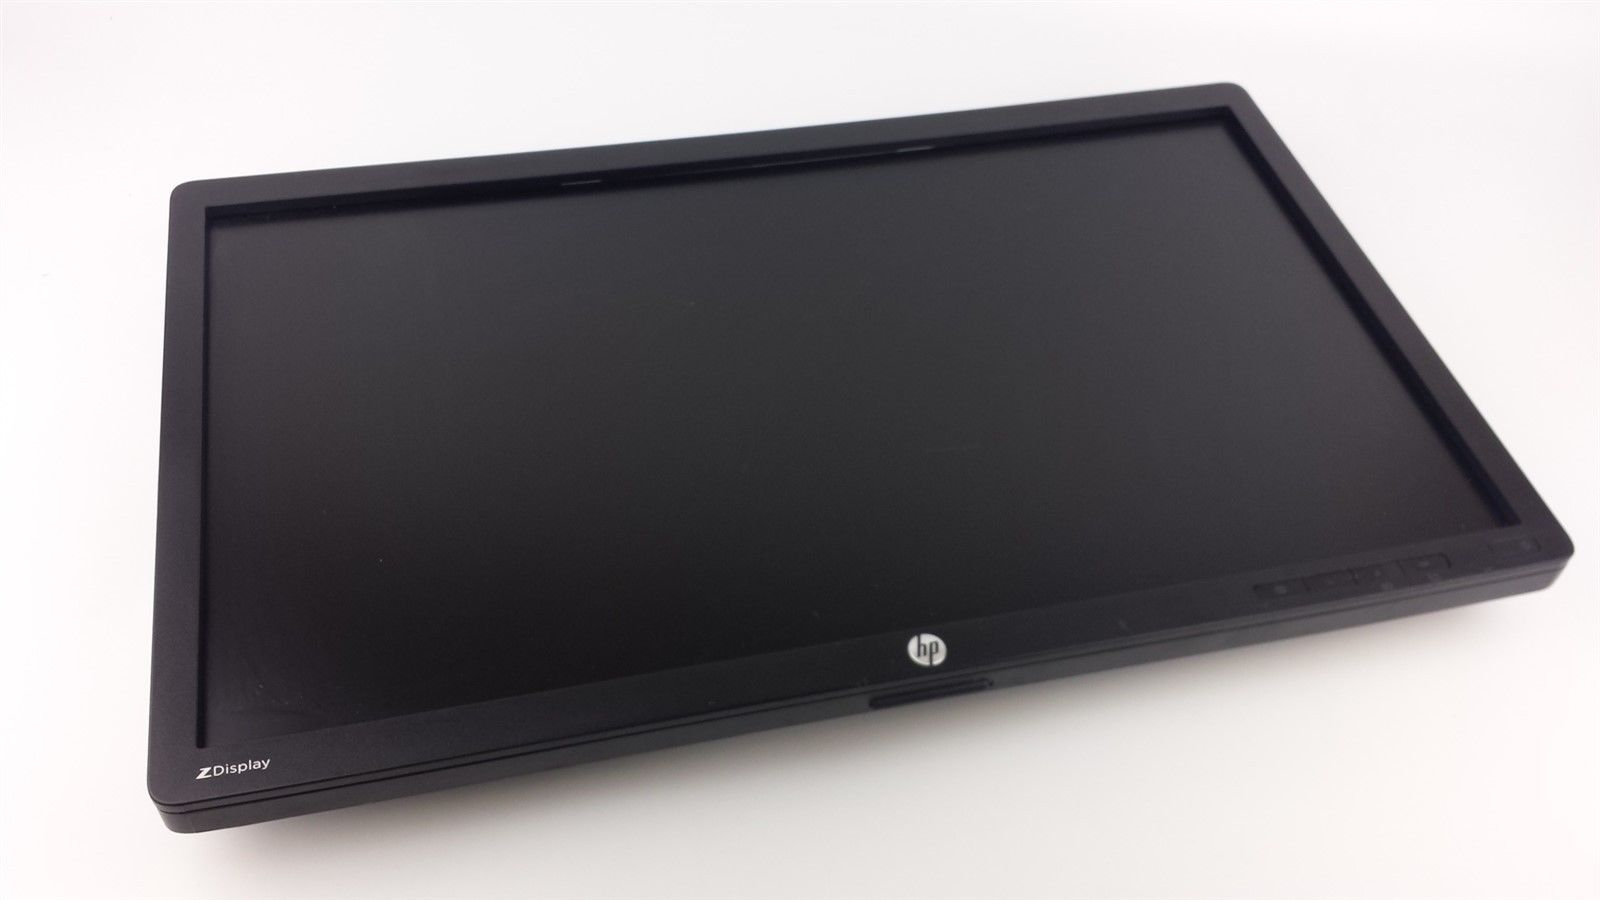 "HP Z Display Z22i LED LCD Computer Monitor 21.5"" D7Q14A4 721833-001 722537-001"